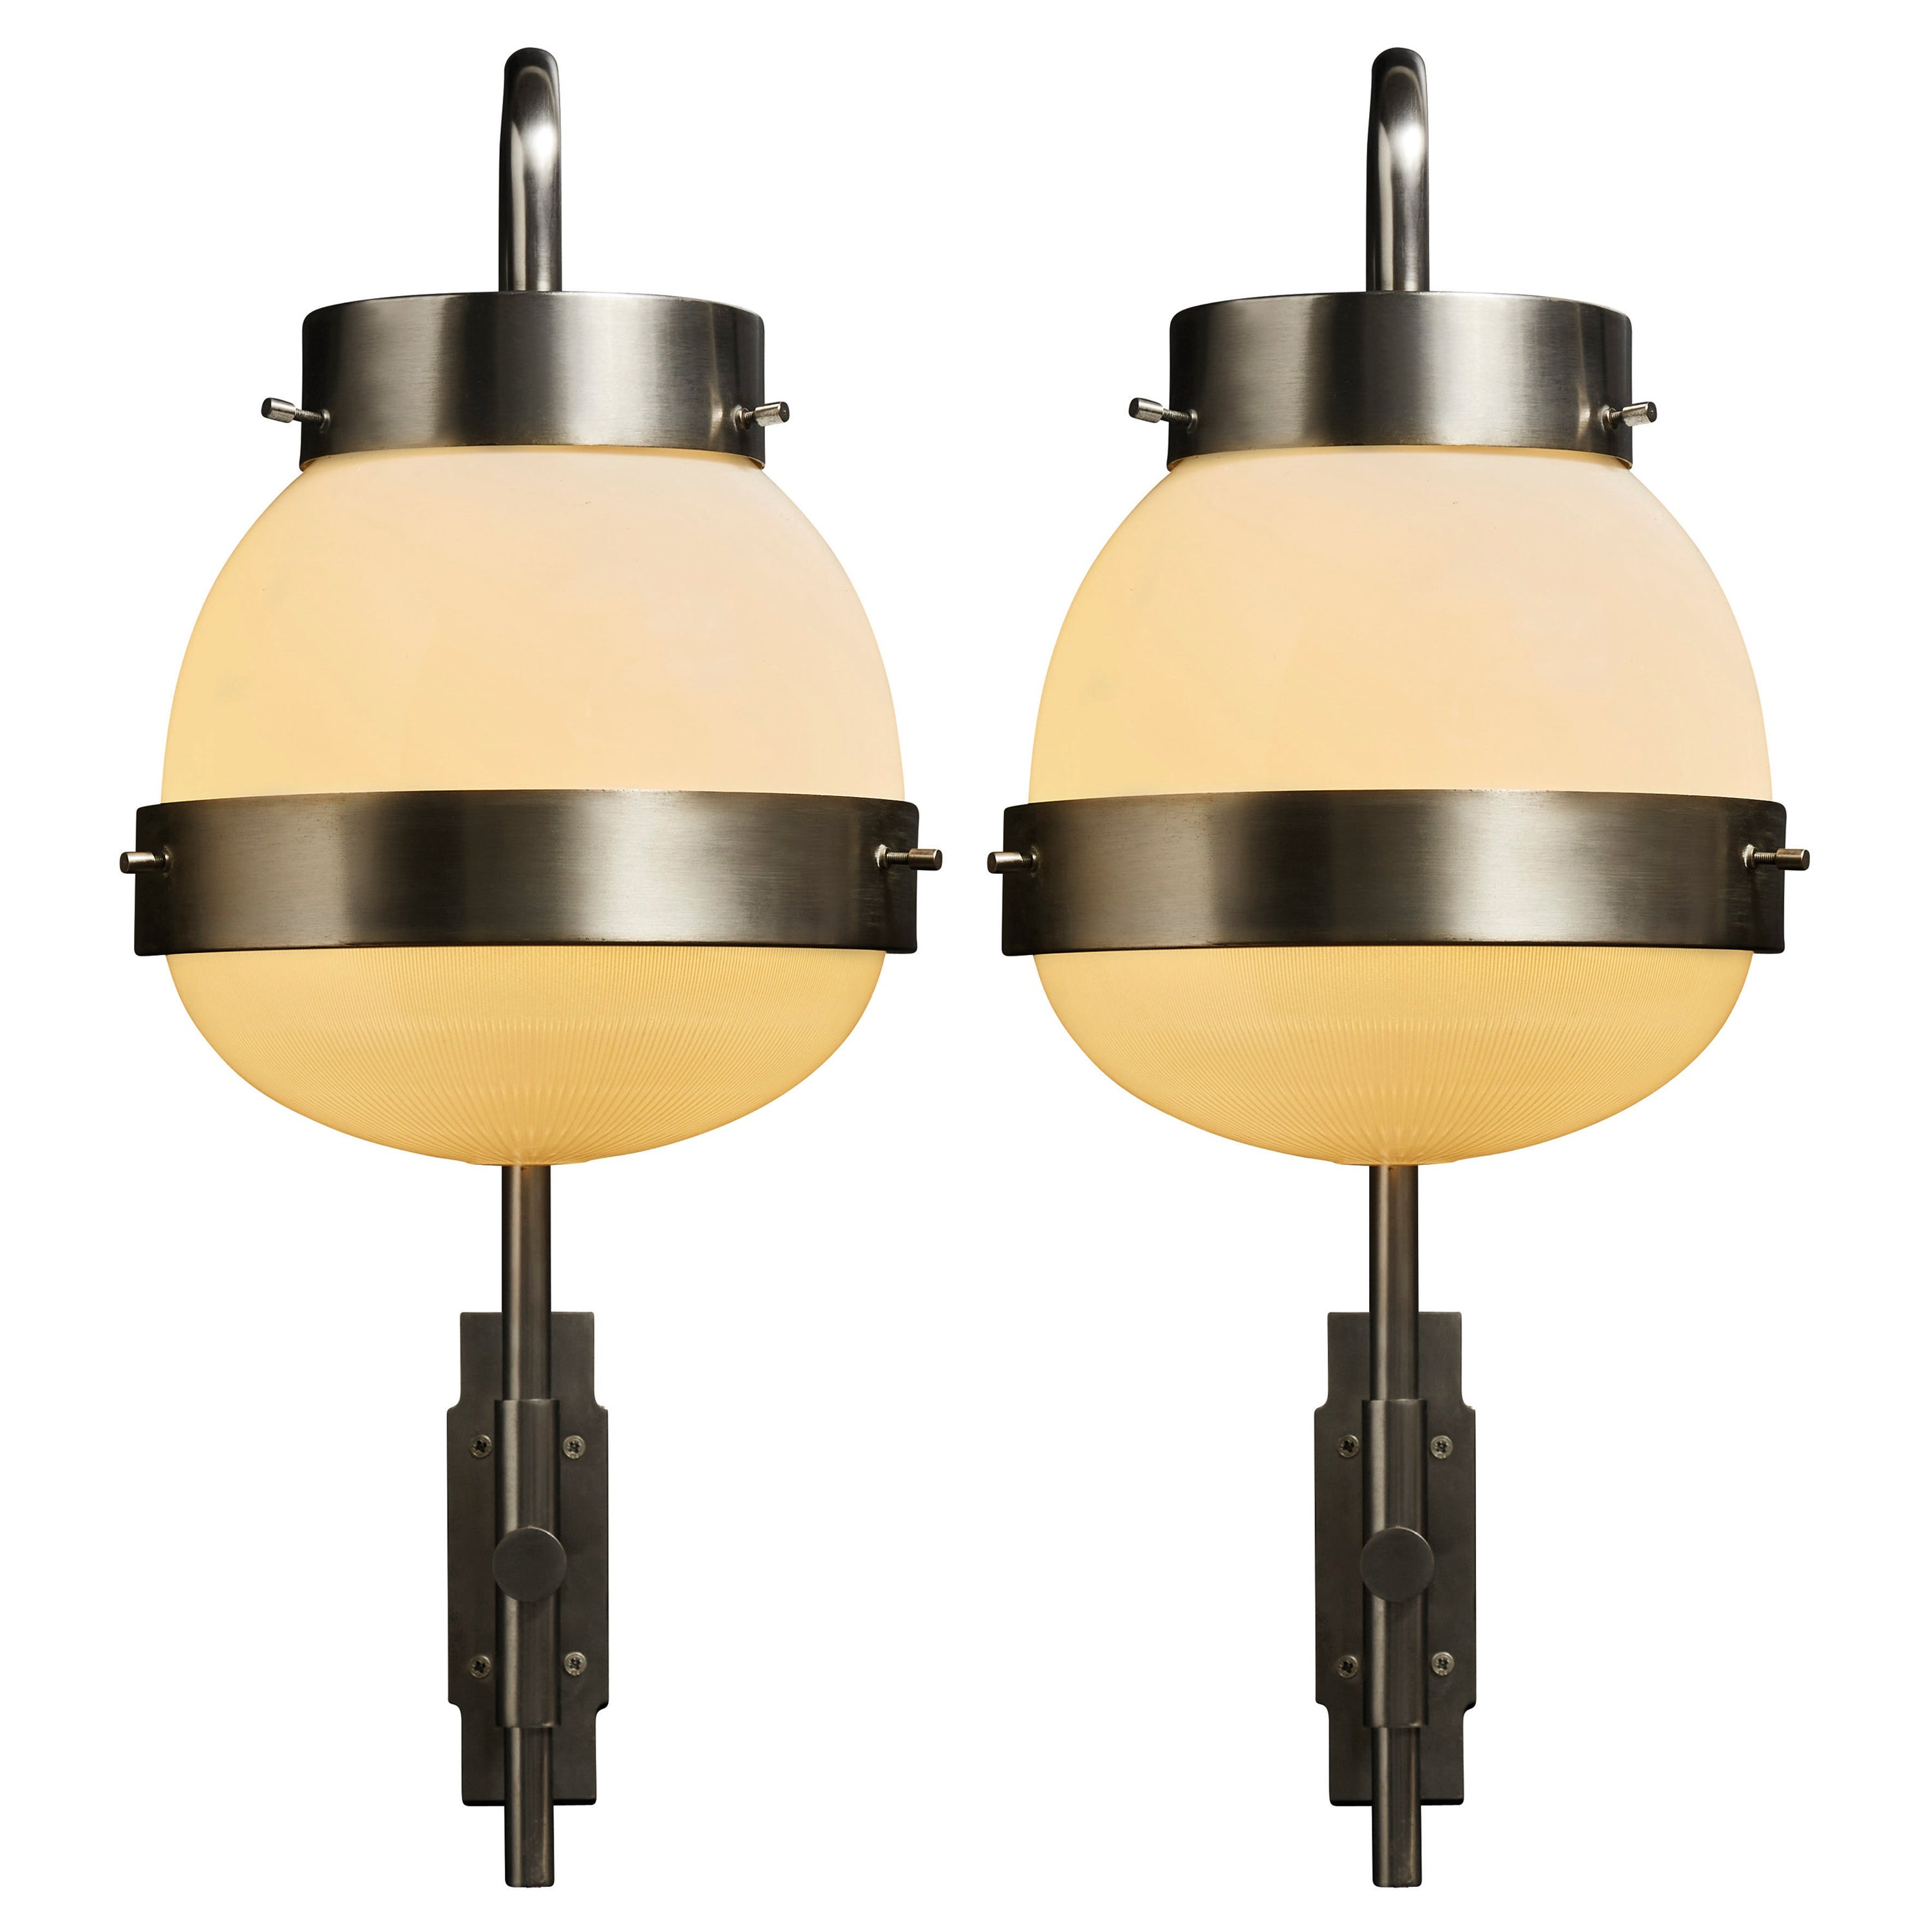 Five Large Delta Wall Sconces by Sergio Mazza for Artemide